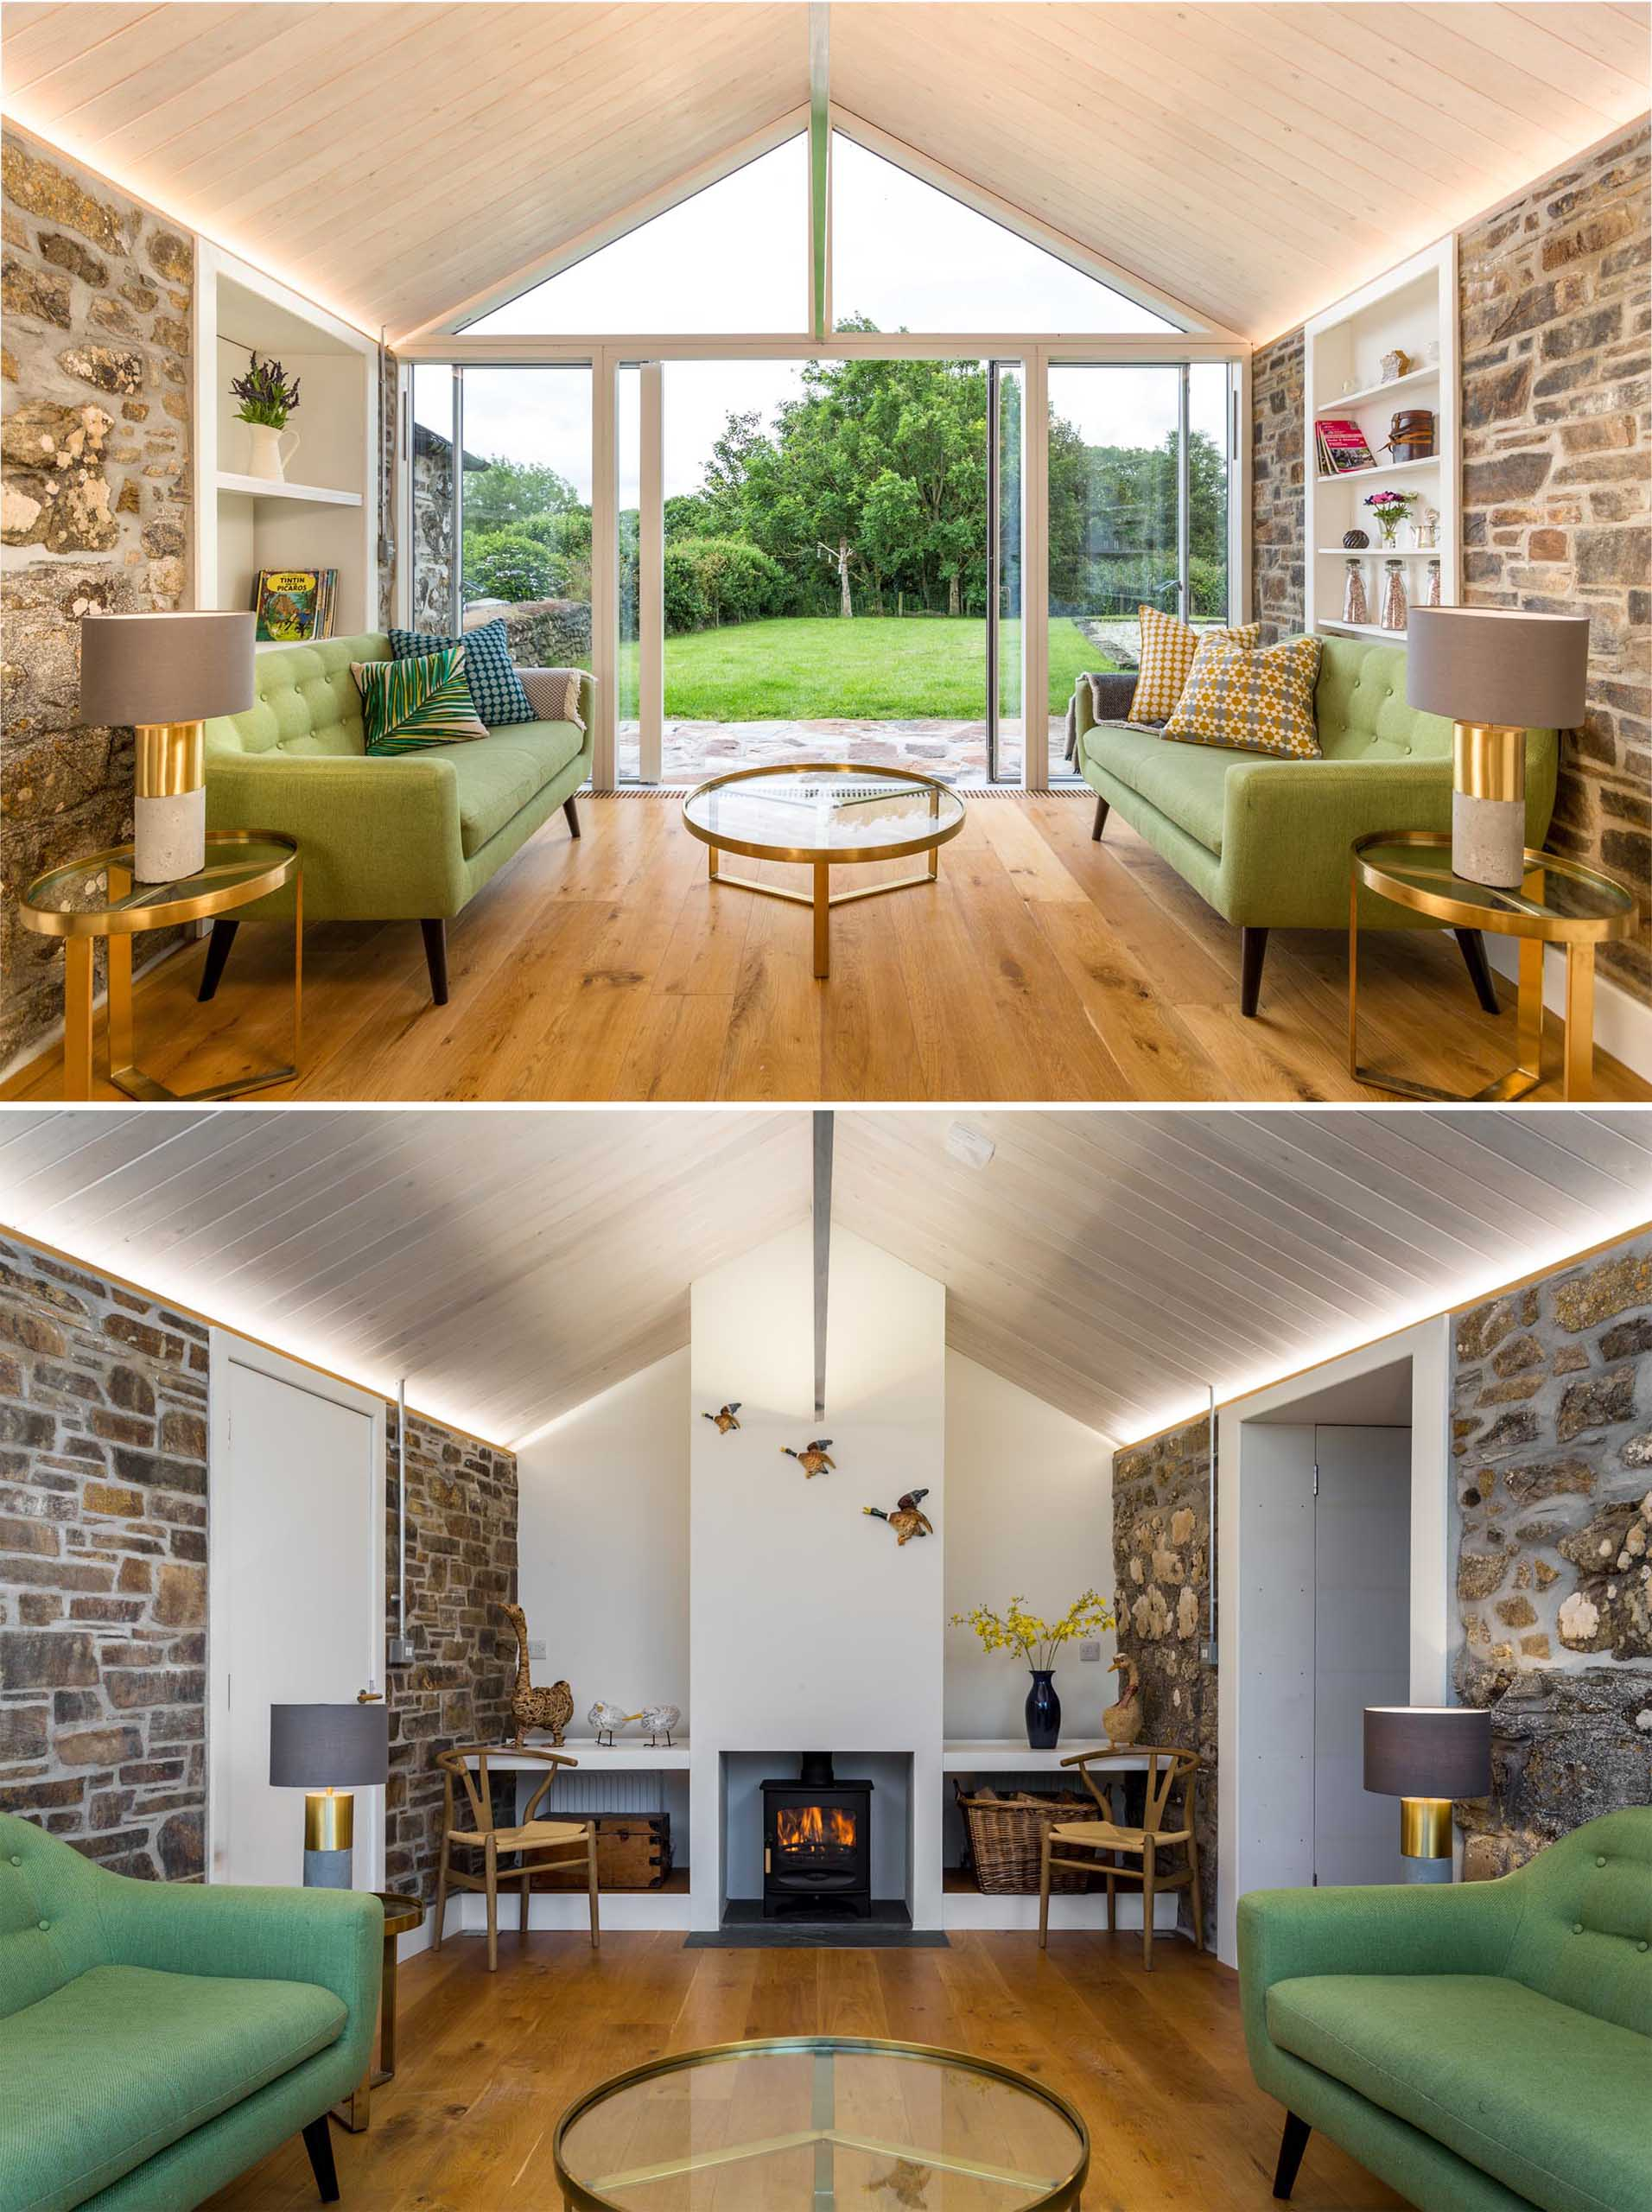 The stone work of the new extension, which is featured on both the exterior and interior of the home, adds a contemporary yet rustic element.